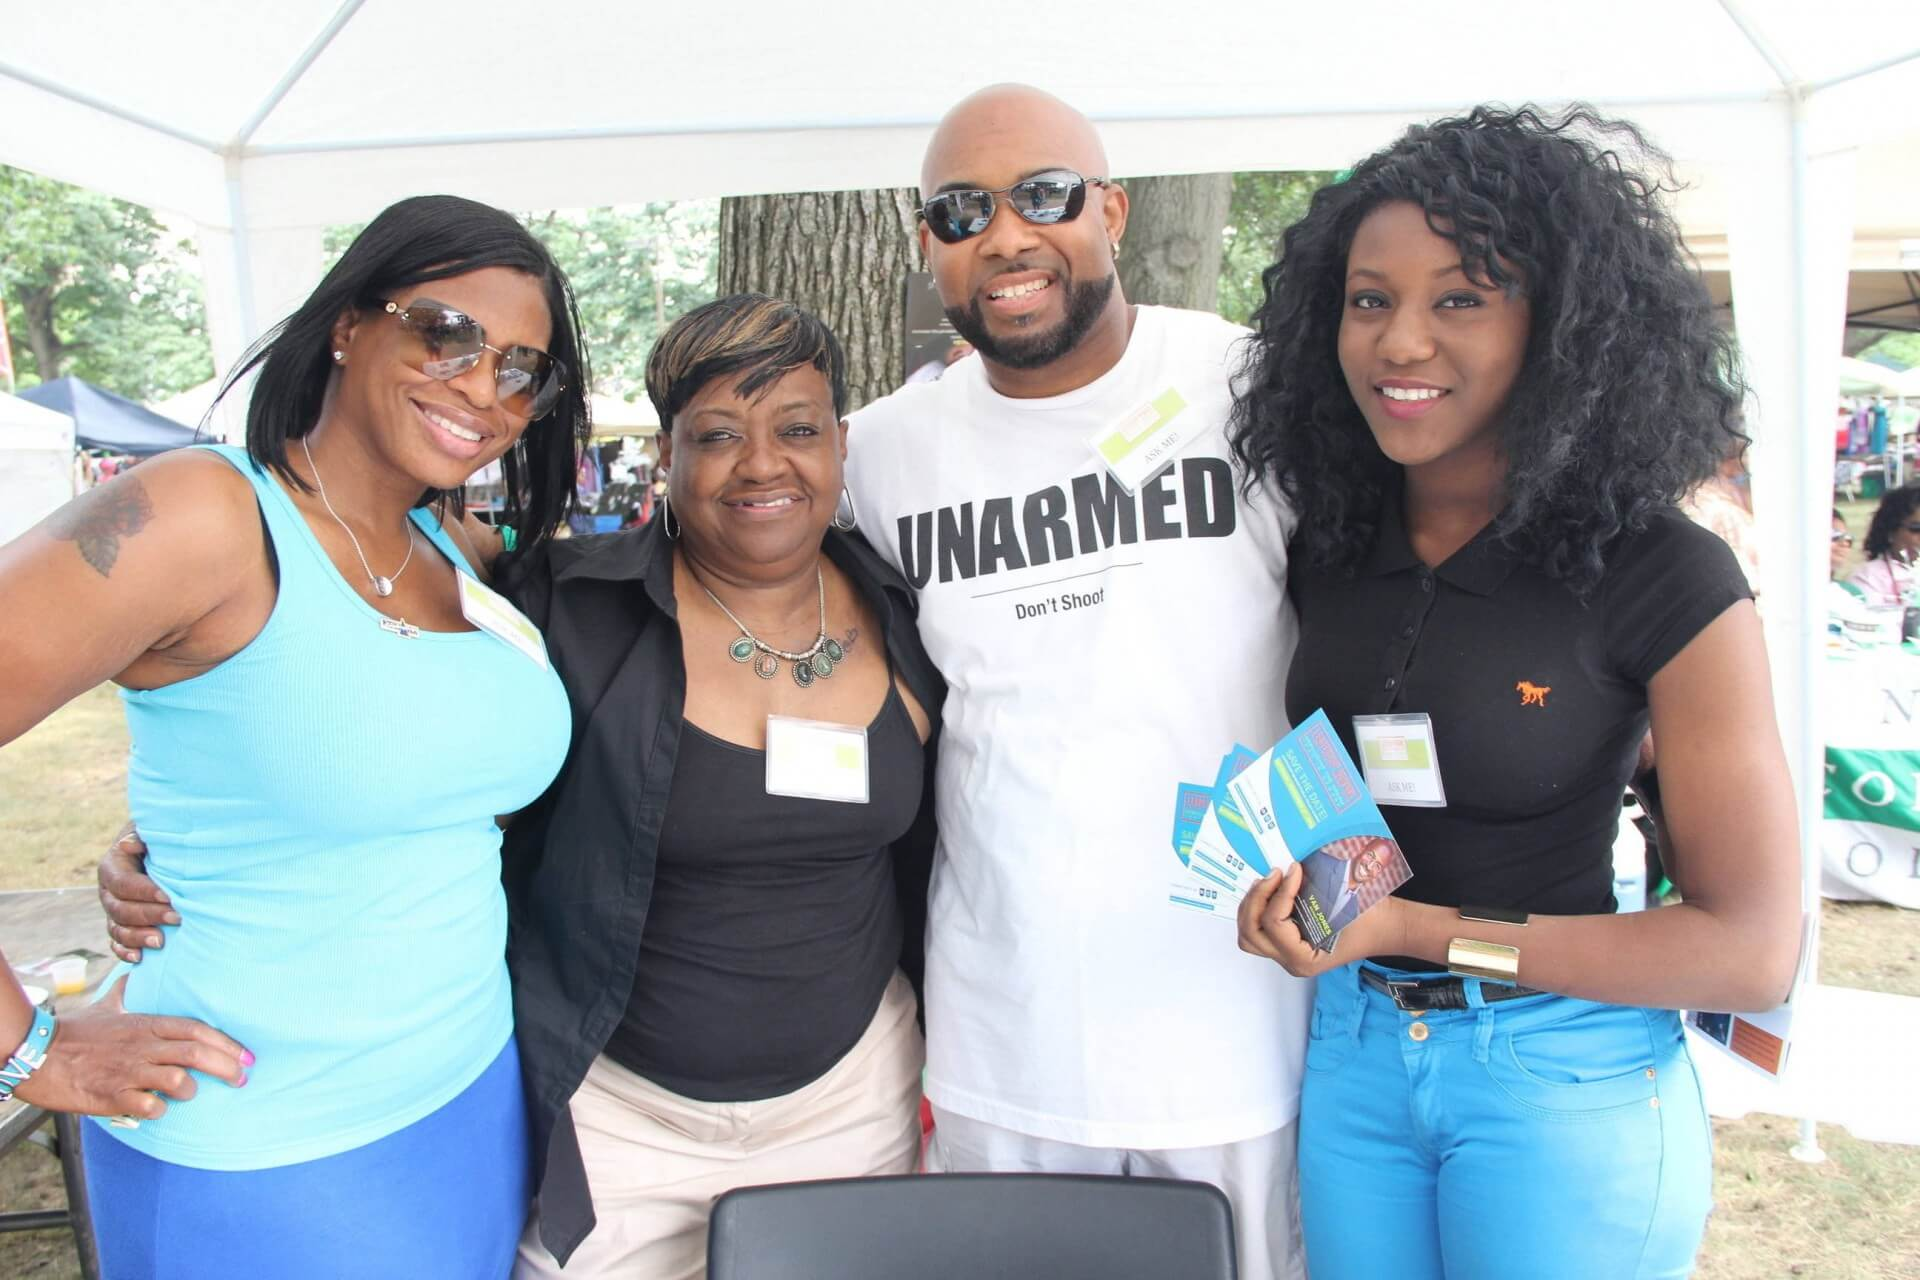 Leadership Newark Rocks The Lincoln Park Music Festival – Written By: Kim J. Ford